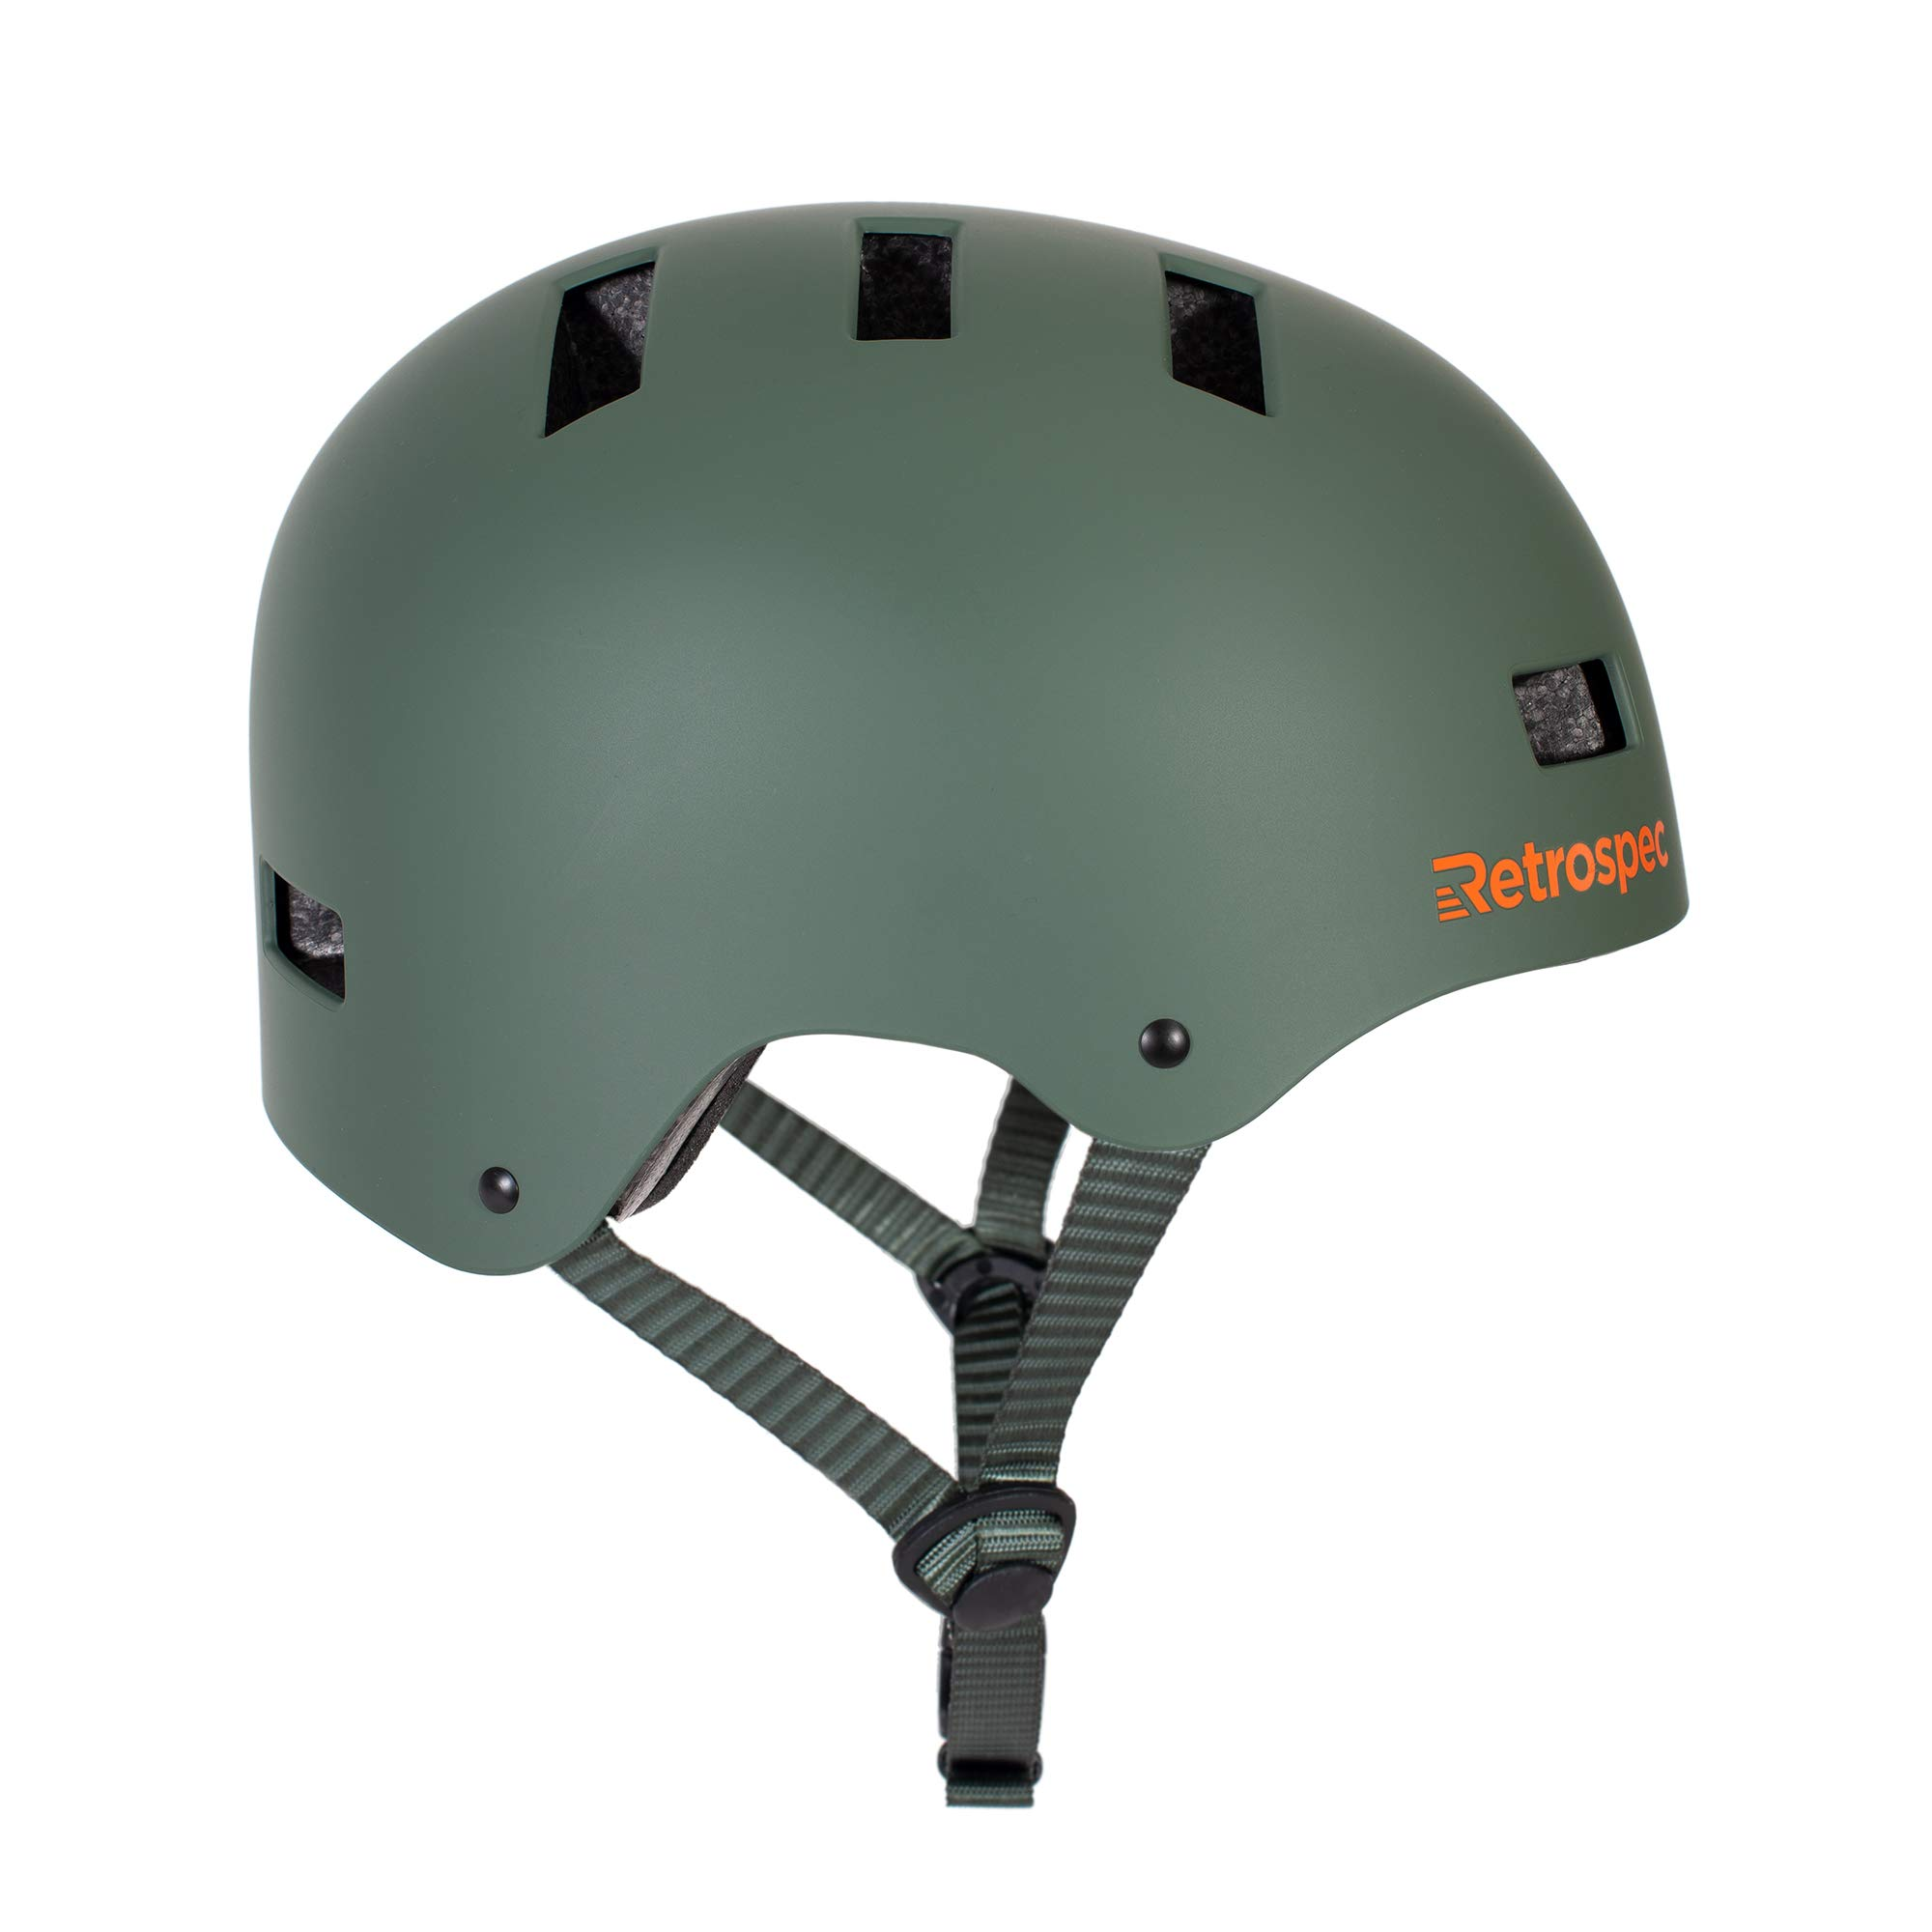 Retrospec CM-1 Bicycle / Skateboard Helmet for Adult CPSC Certified Commuter, Bike, Skate, Matte Forest Green, Small: 51-55 cm / 20''-21.75''